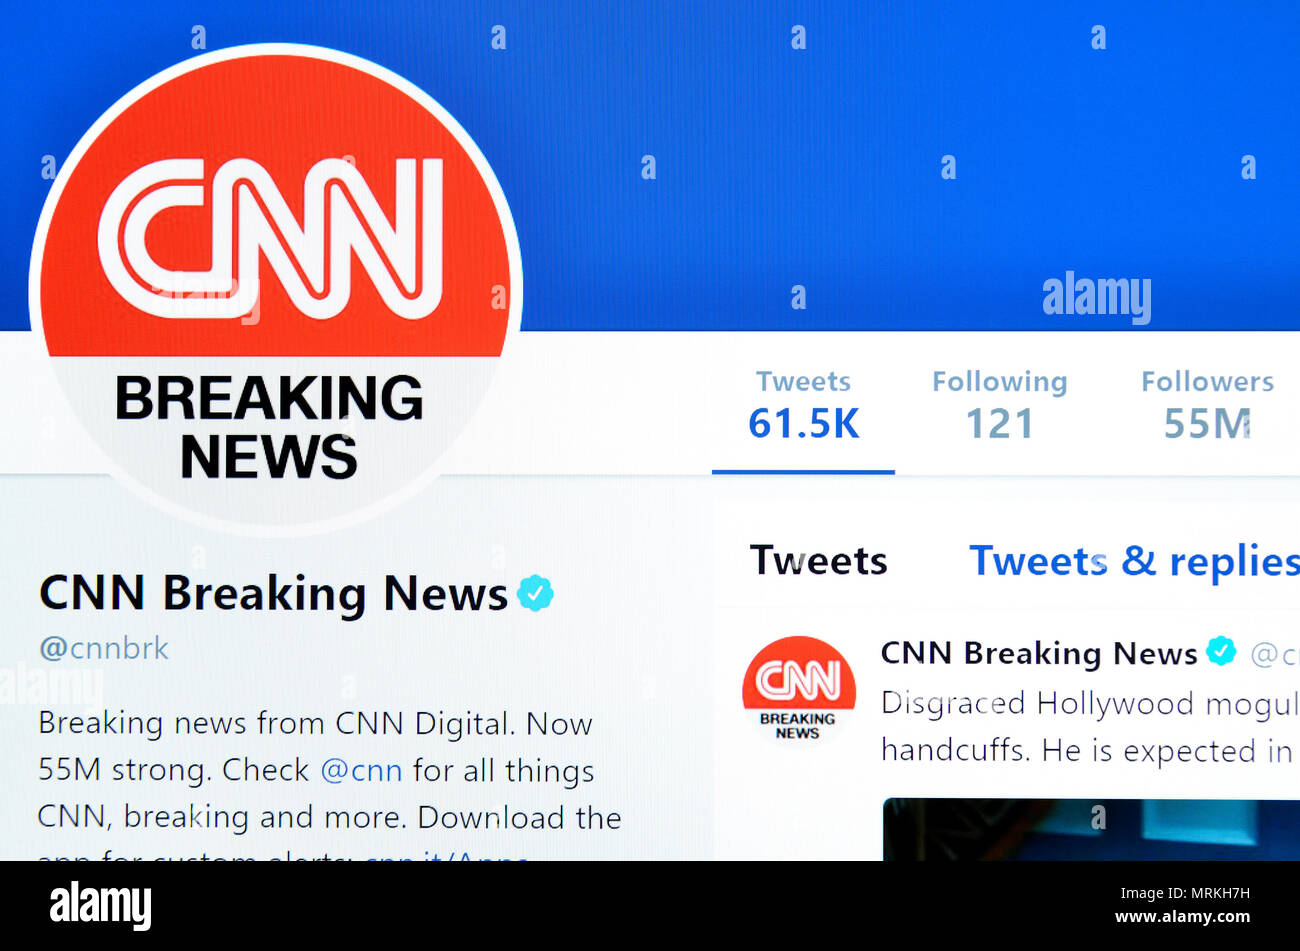 CNN Breaking News Twitter page (2018) - Stock Image